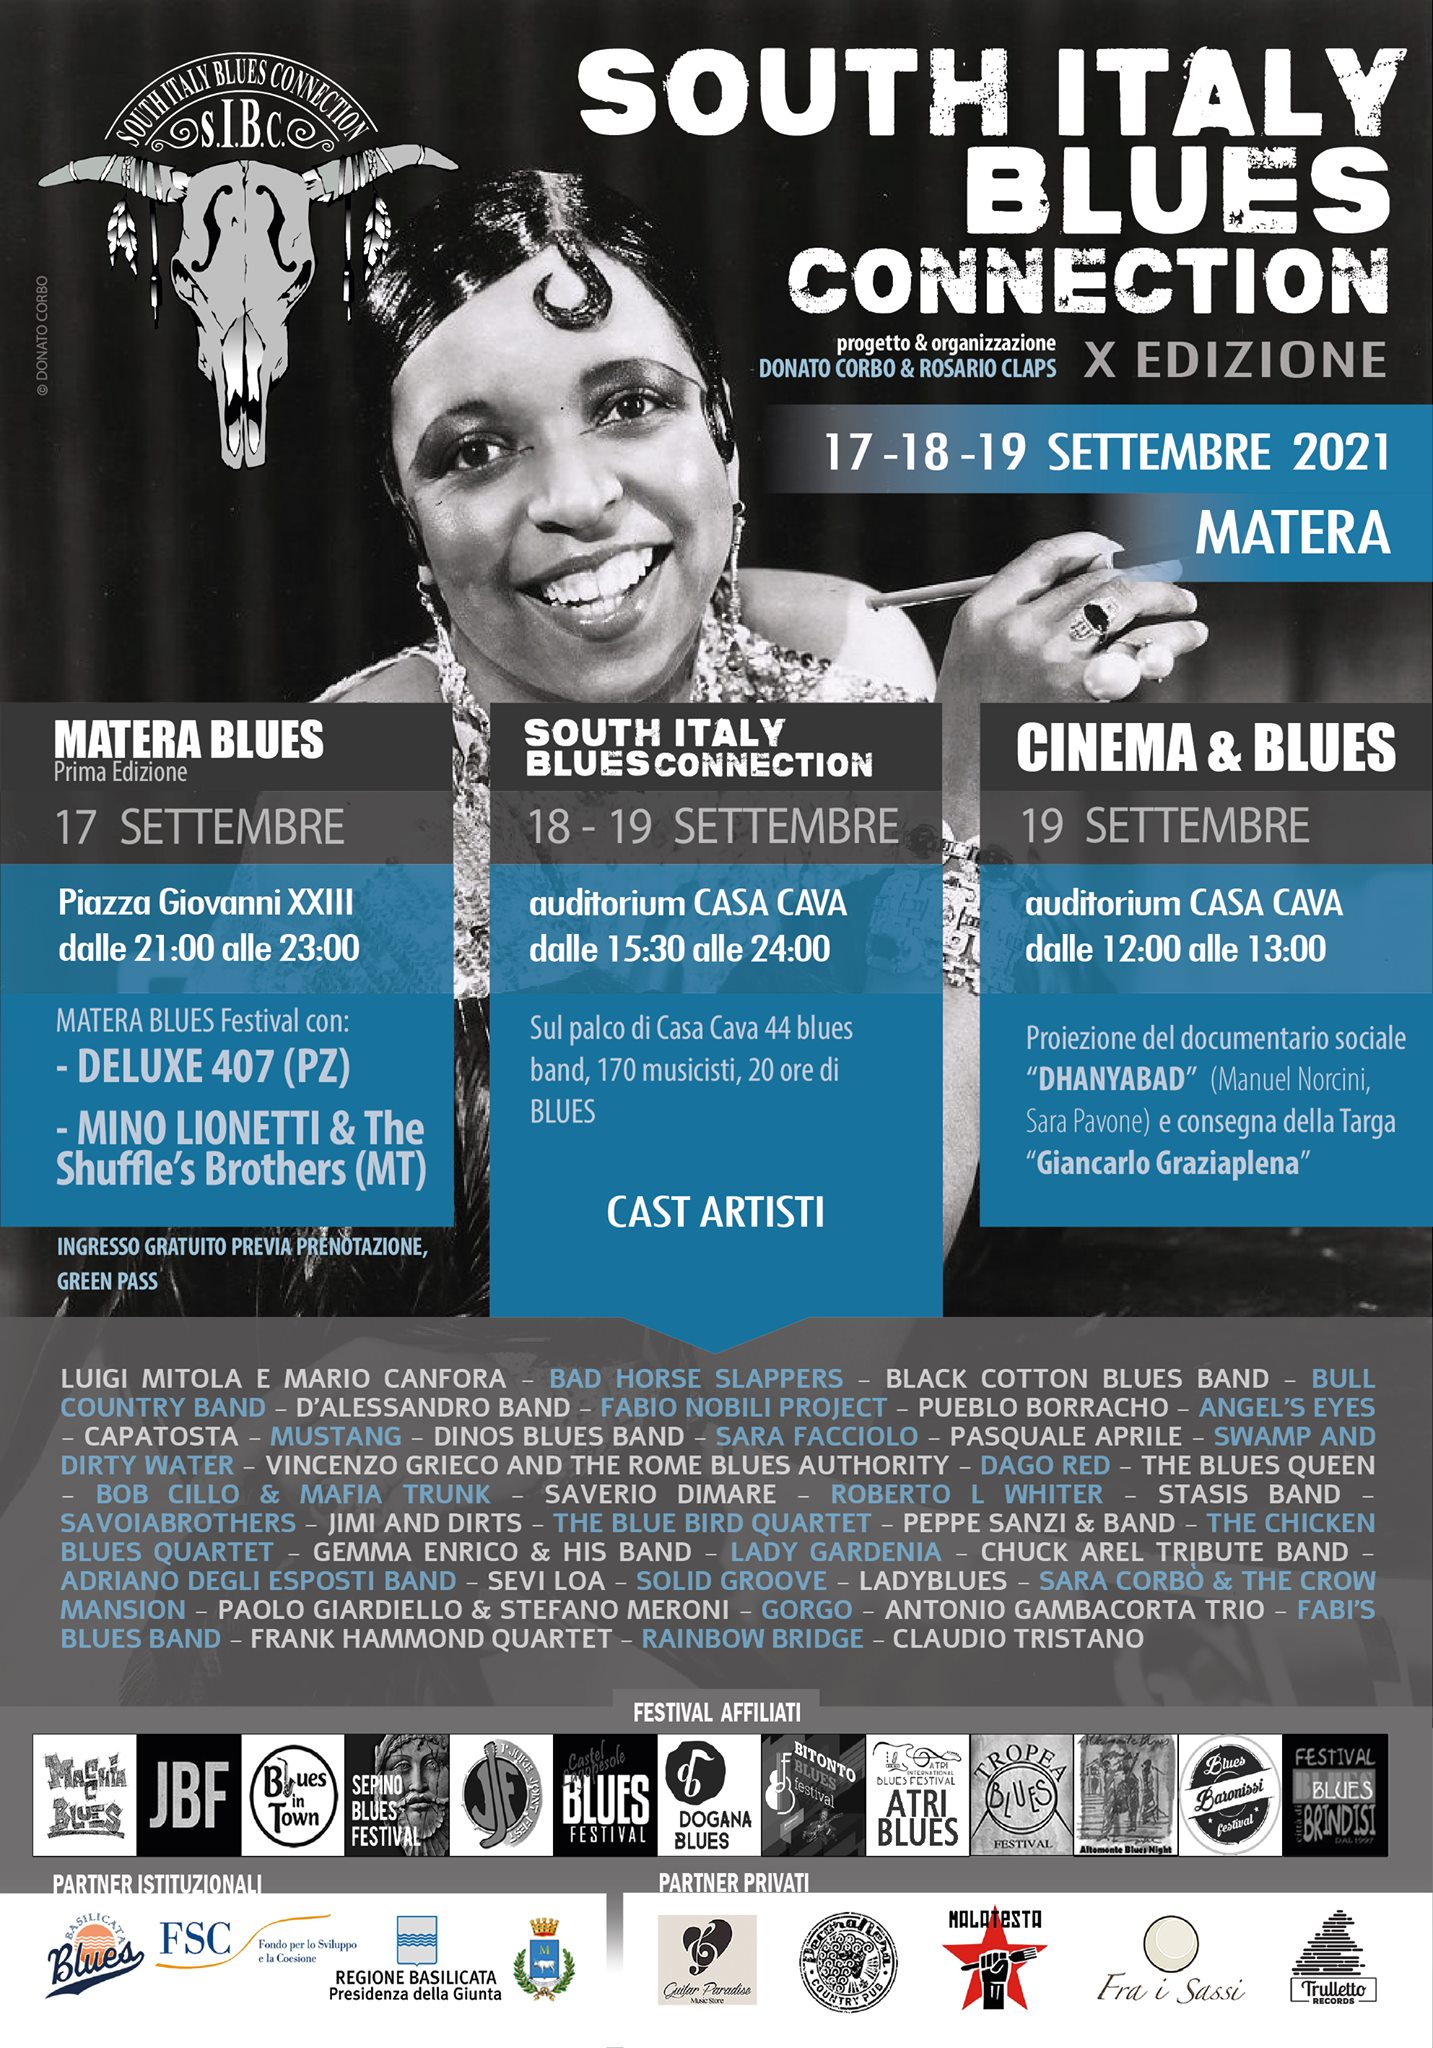 South Italy Blues Connection - 2021